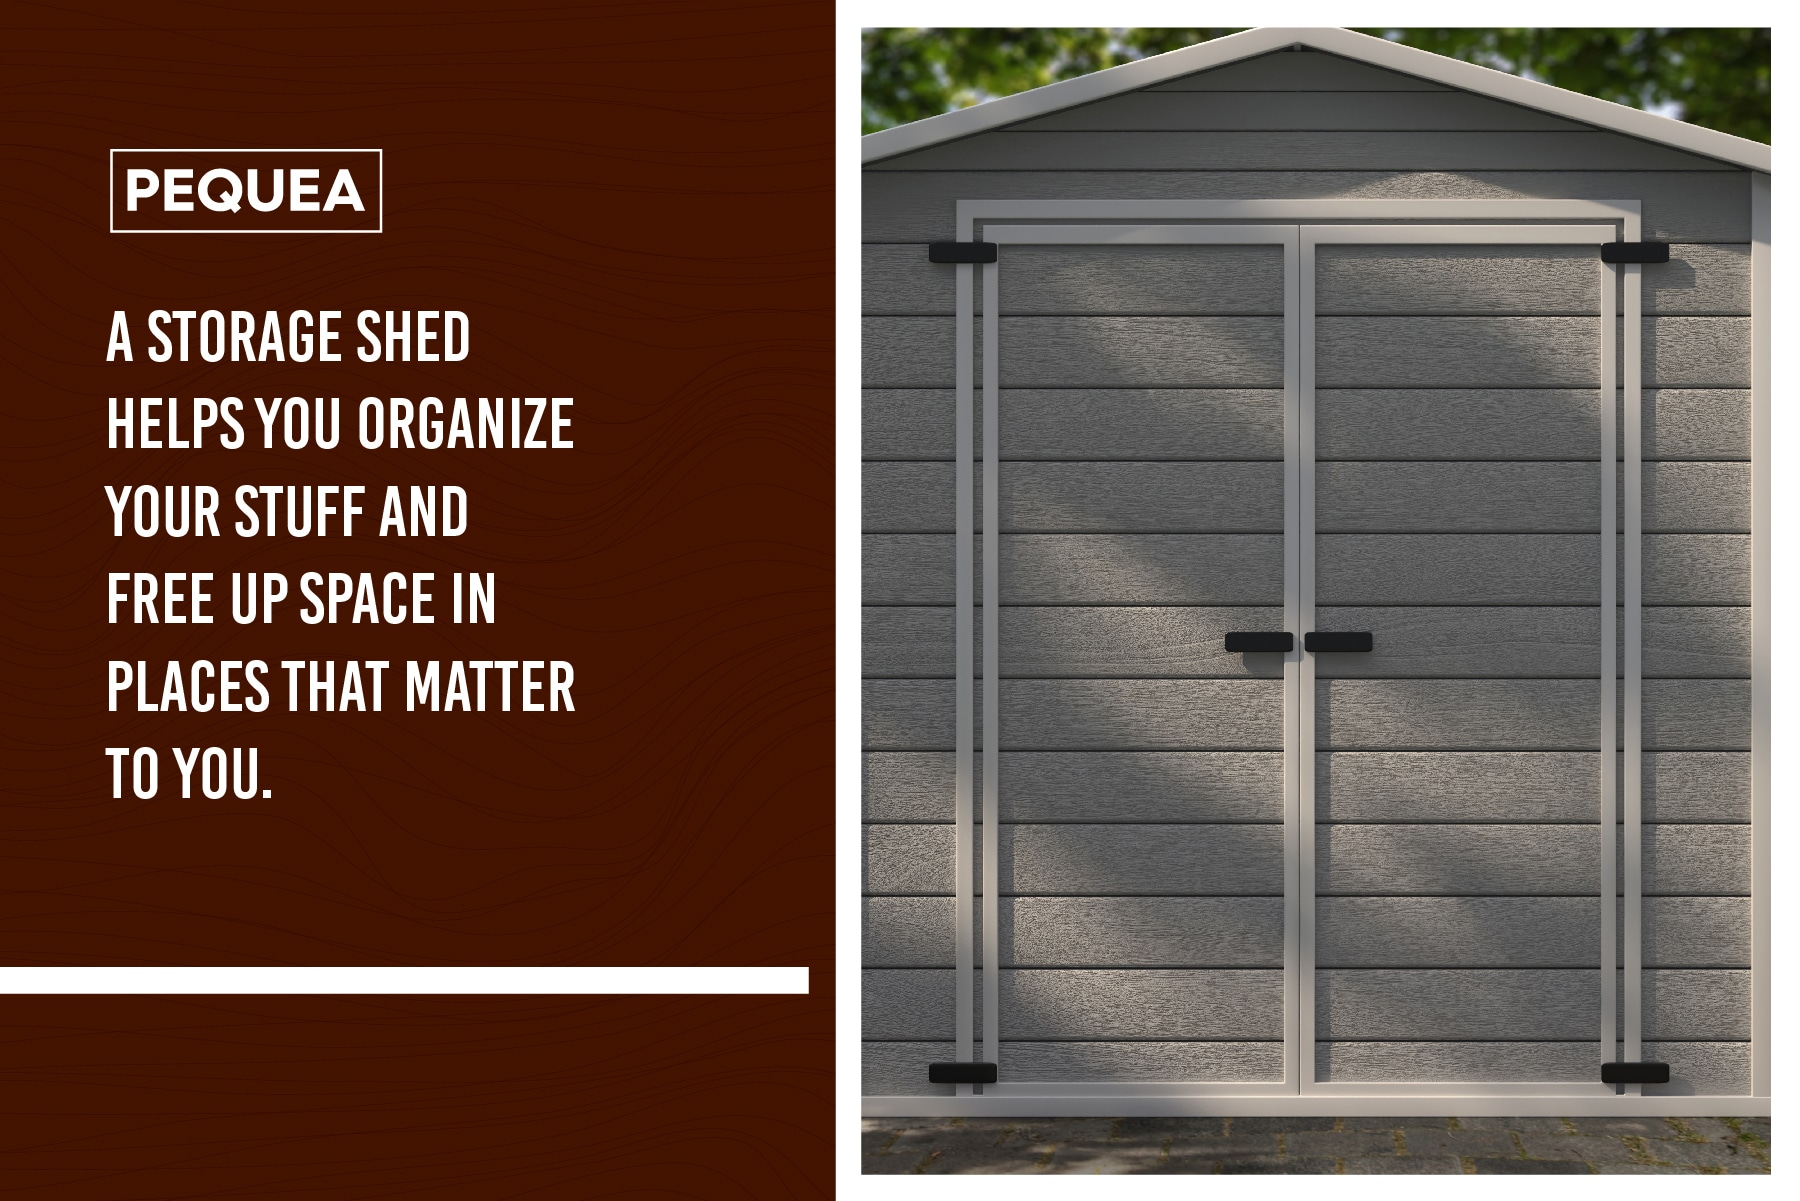 a storage shed helps organize your life